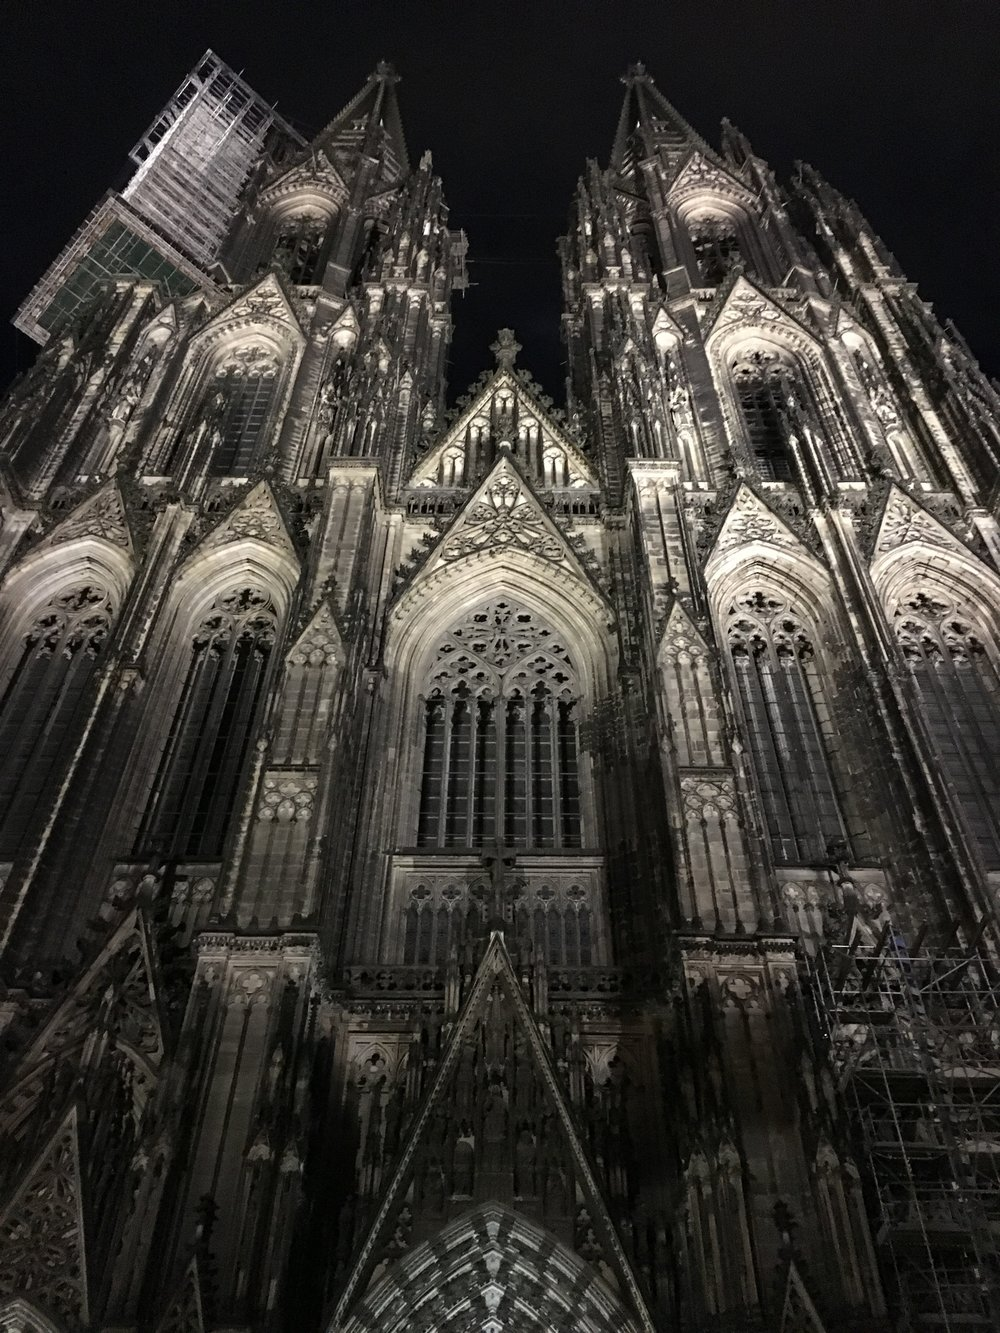 Cologne_cathedral at night #nofilter.JPG